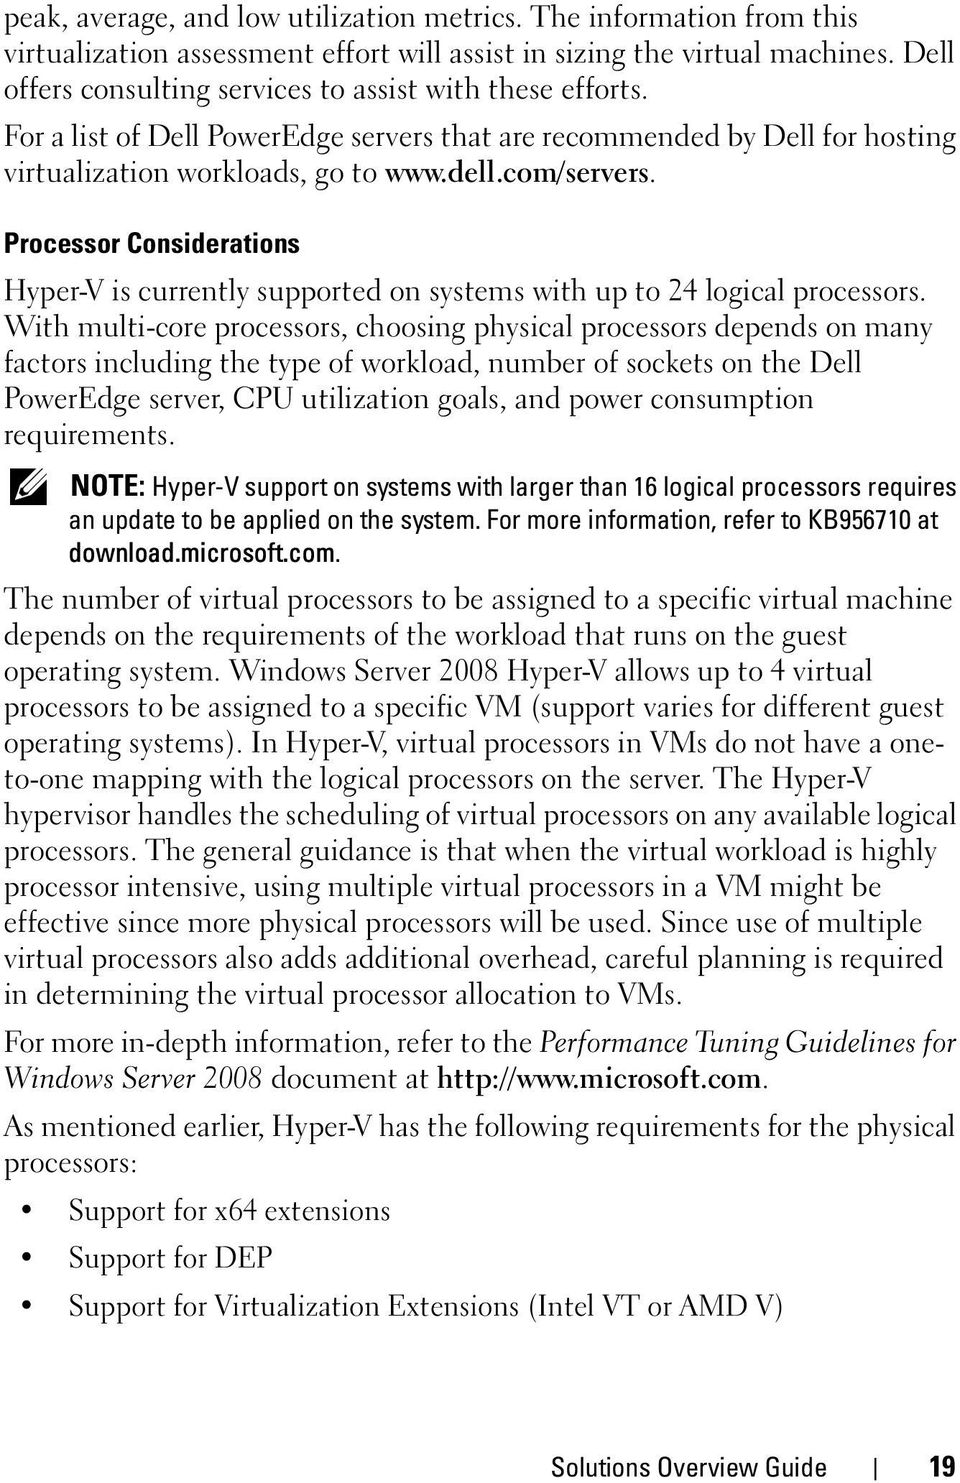 Processor Considerations Hyper-V is currently supported on systems with up to 24 logical processors.